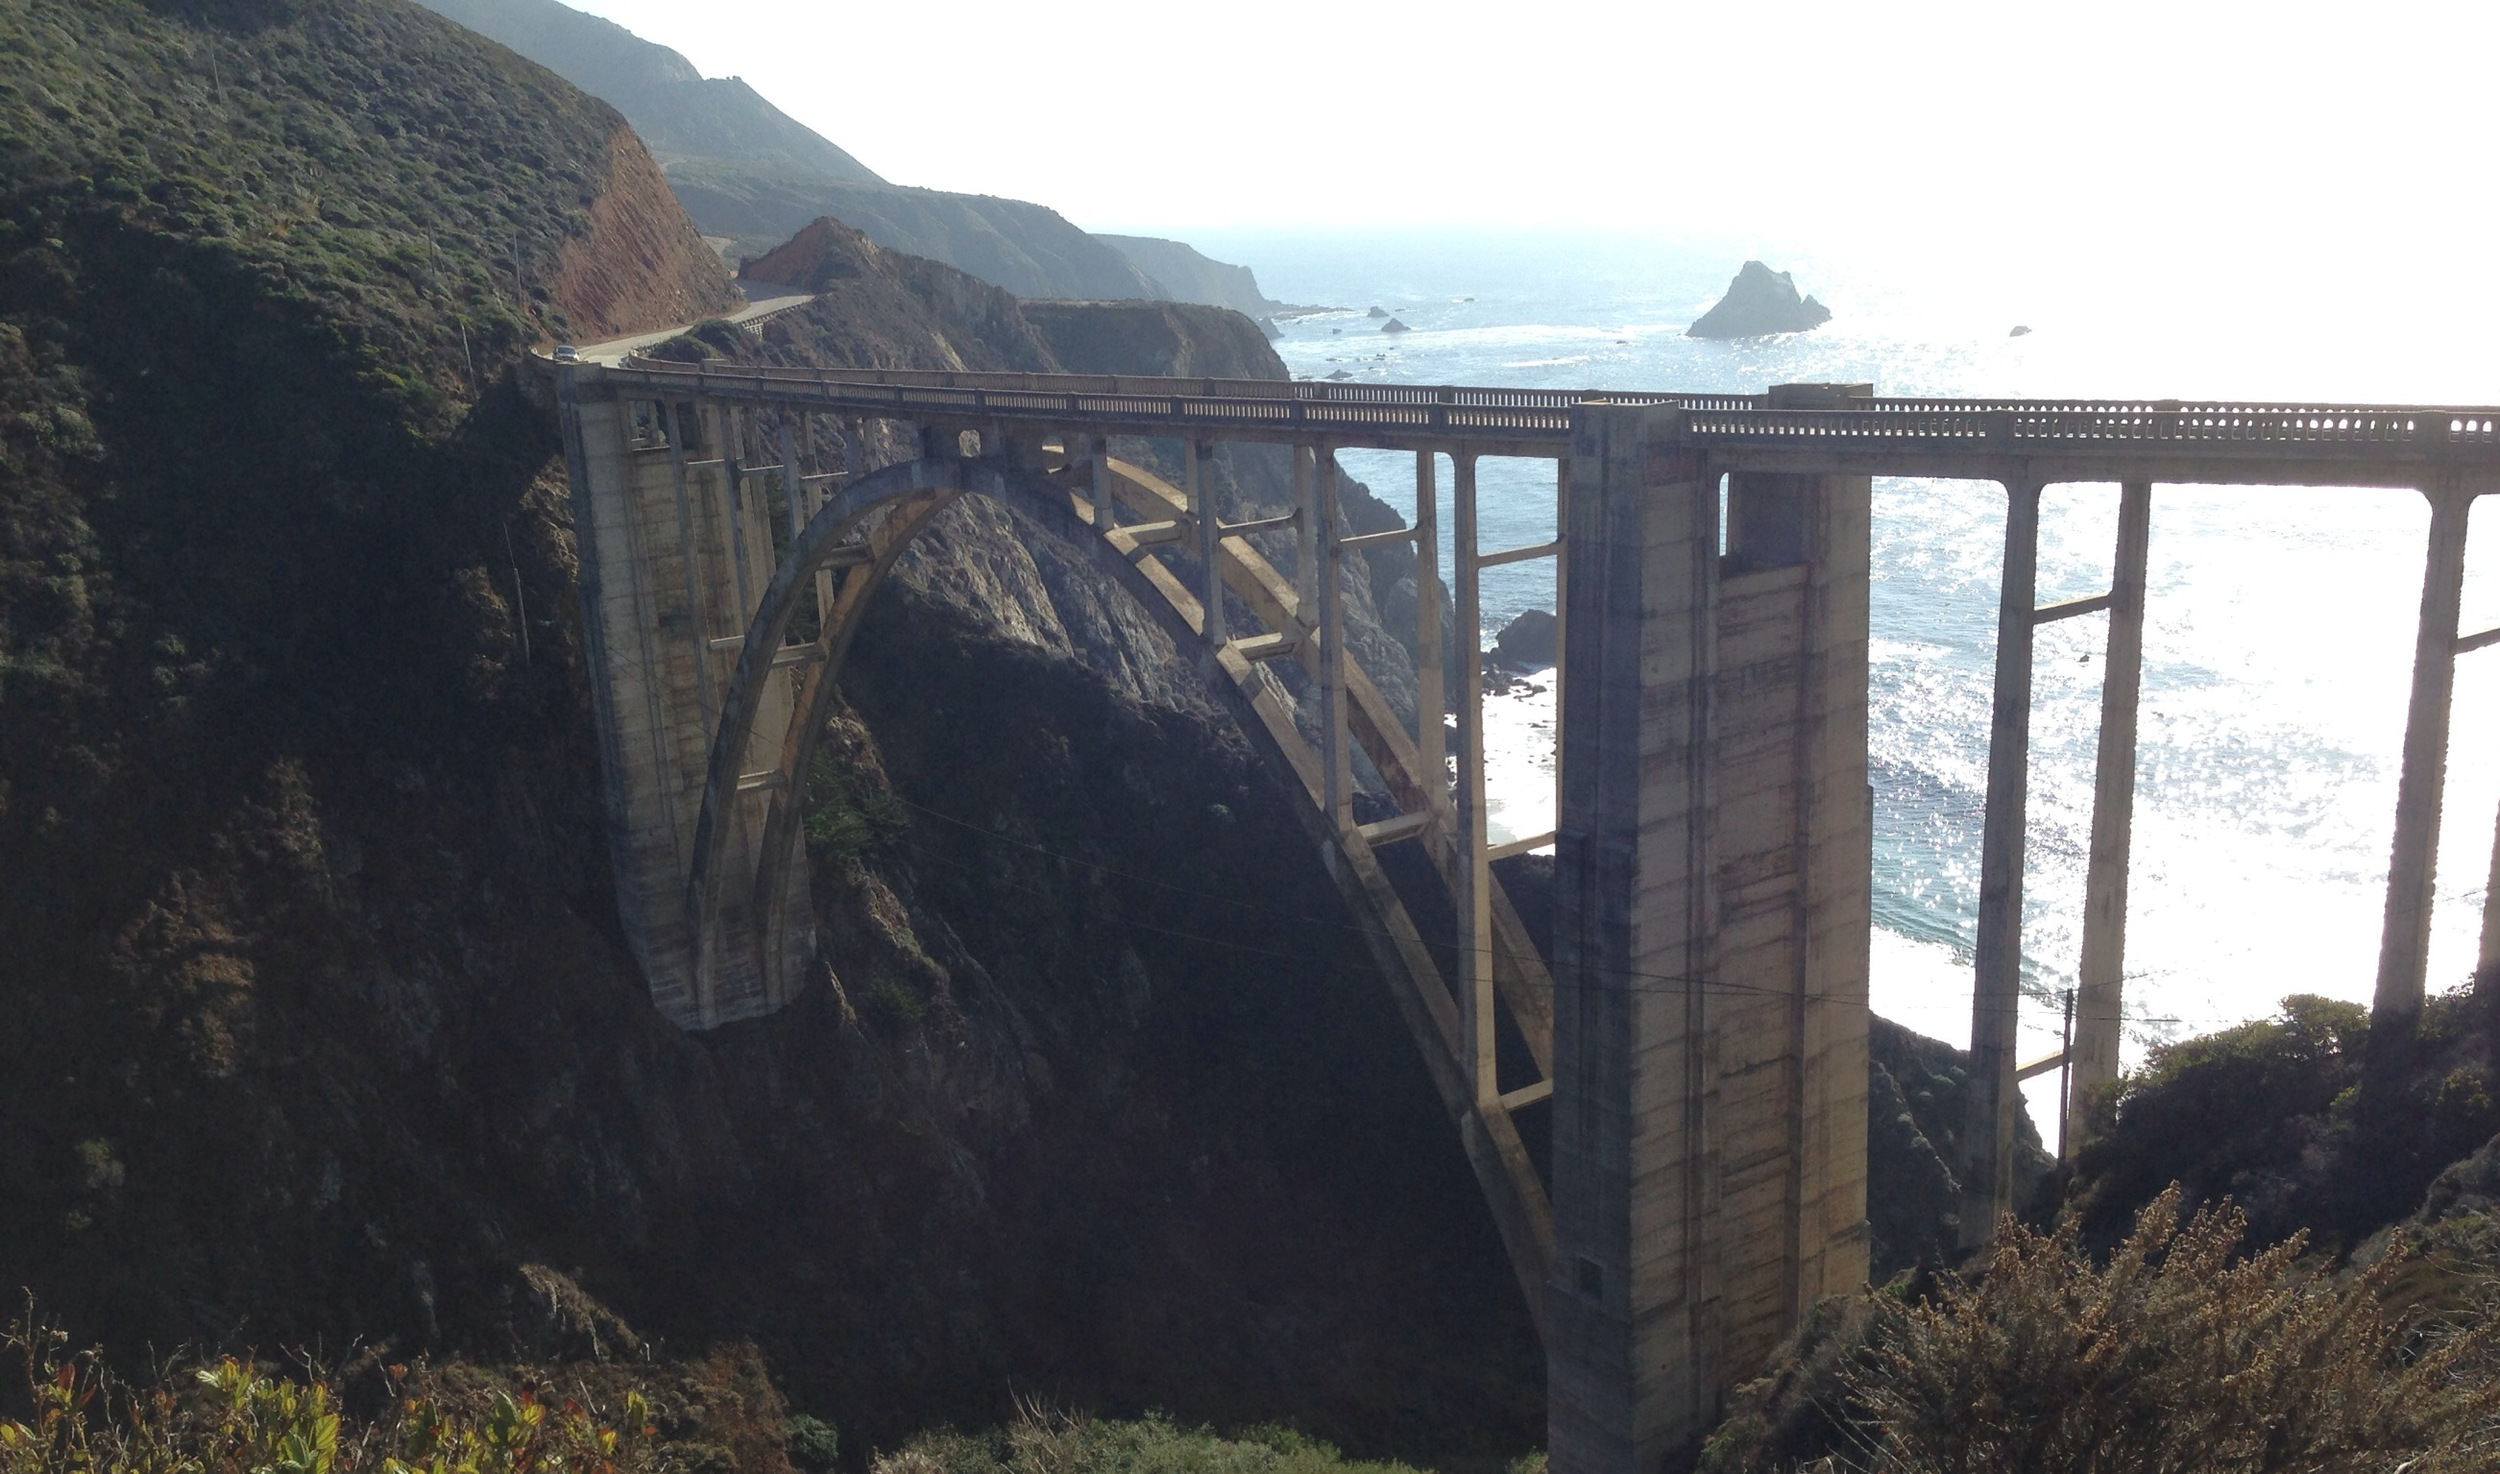 Bixby Canyon Bridge (yes, from the Death Cab song)